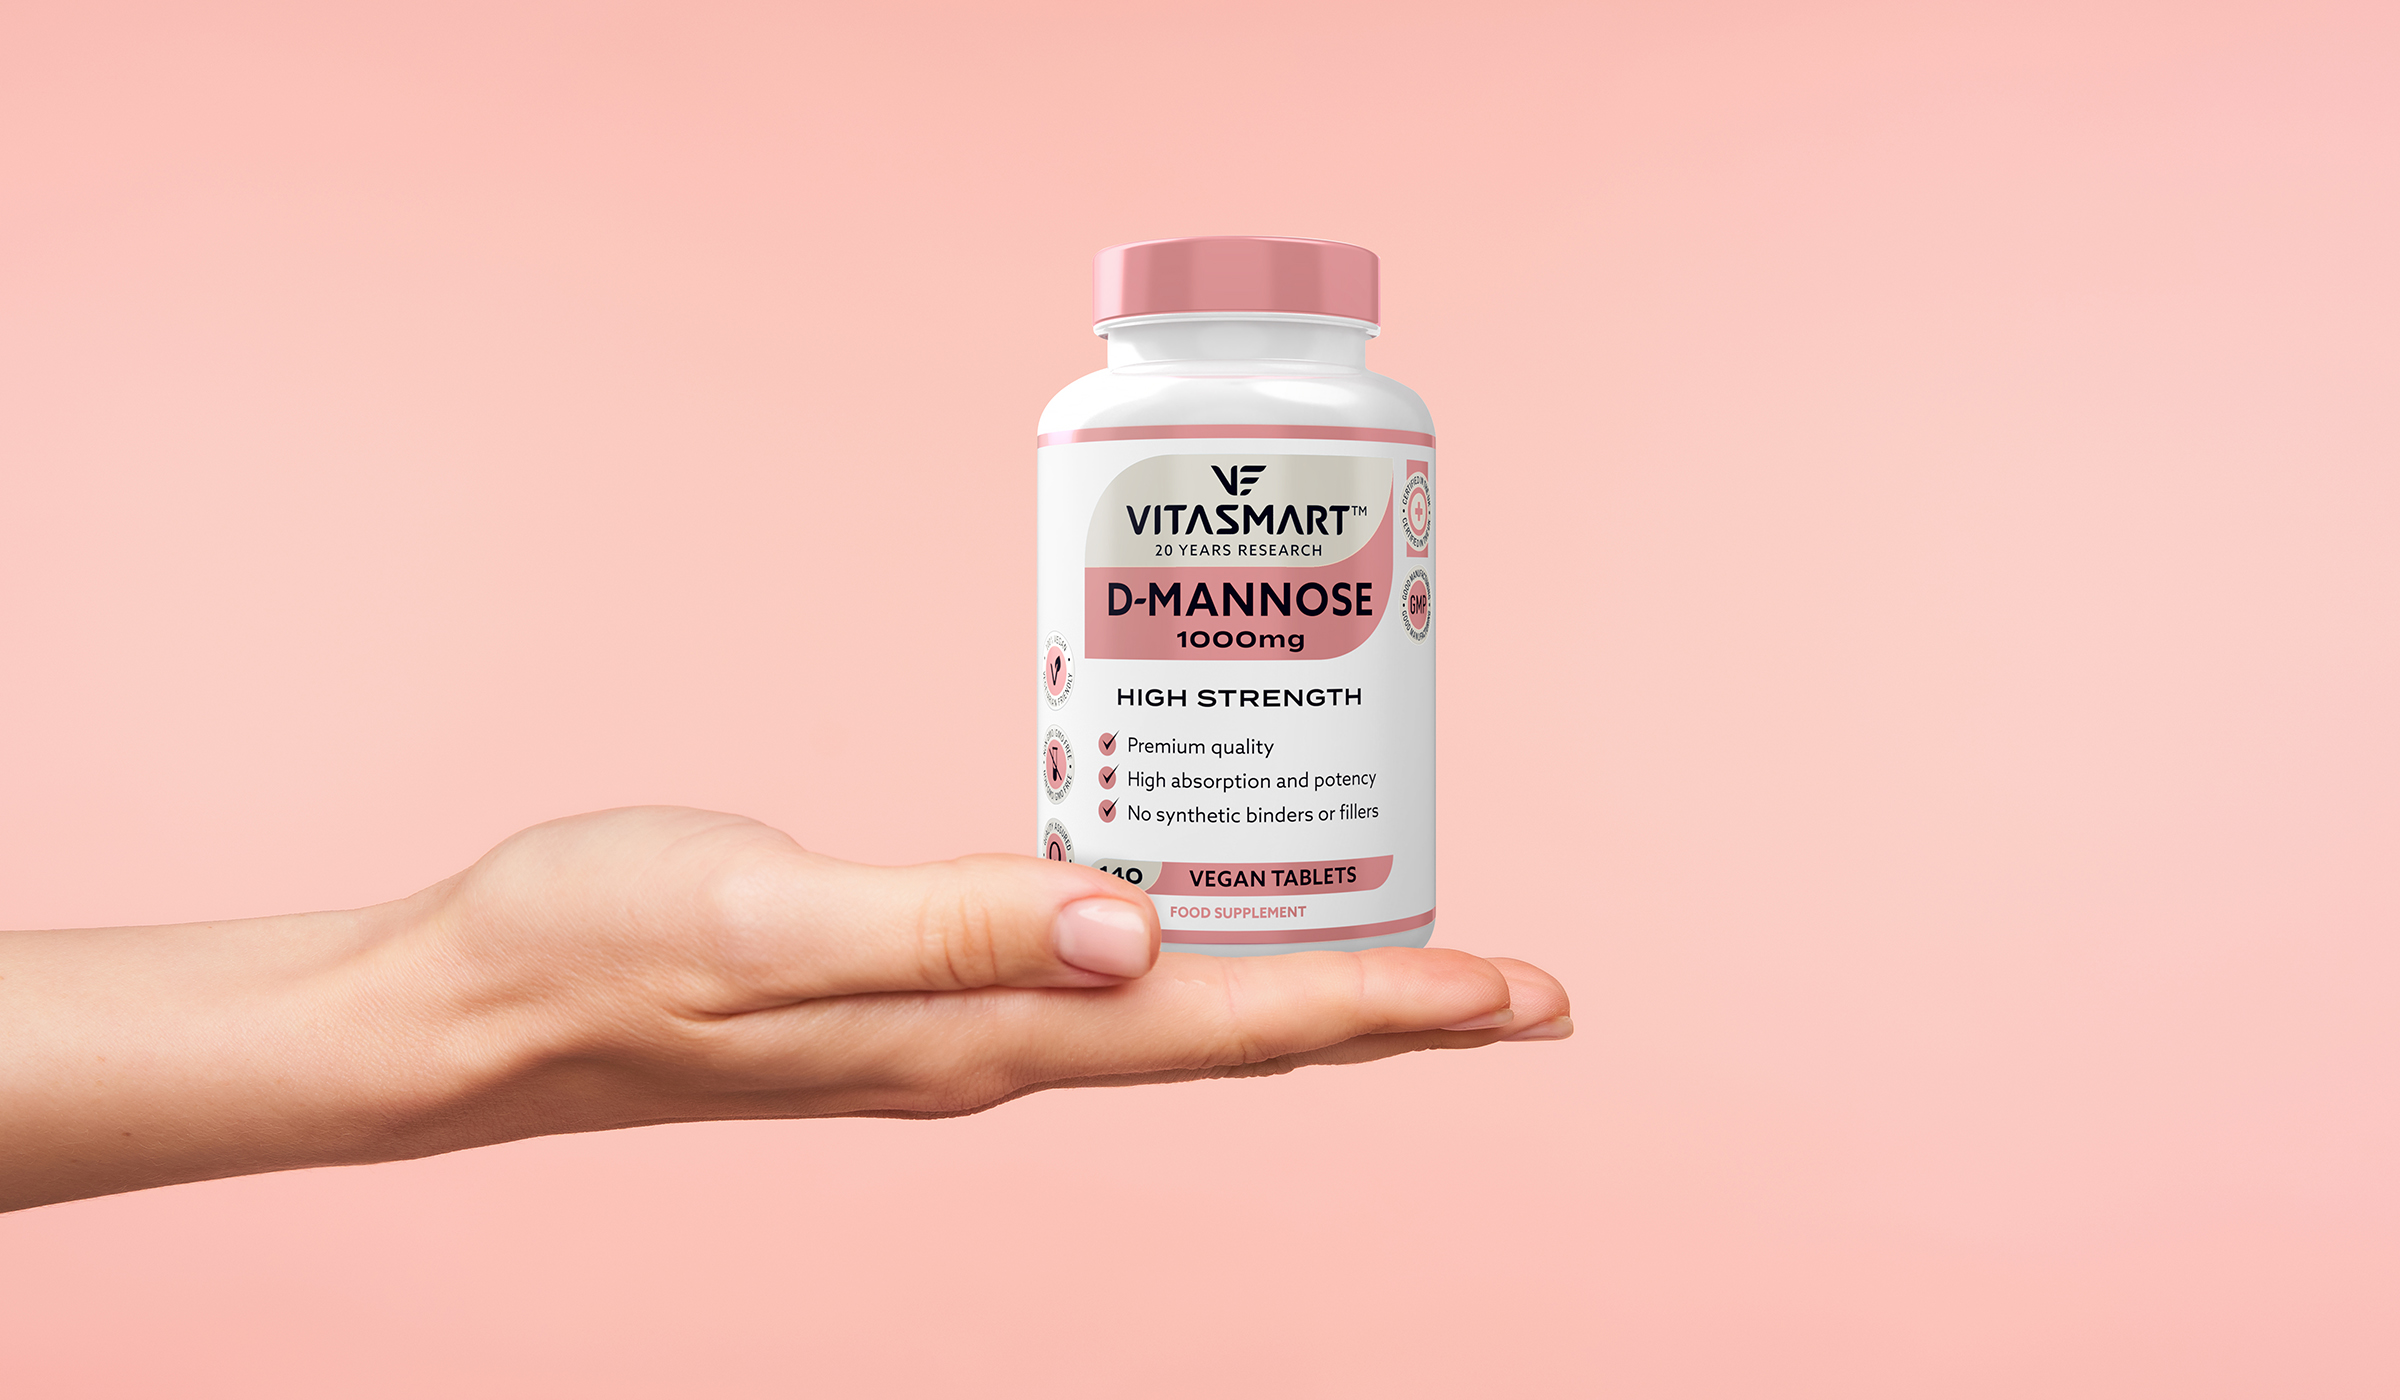 Vitasmart - 20 years research - designed by P&W. D-mannose. Vegan tablets bottle.